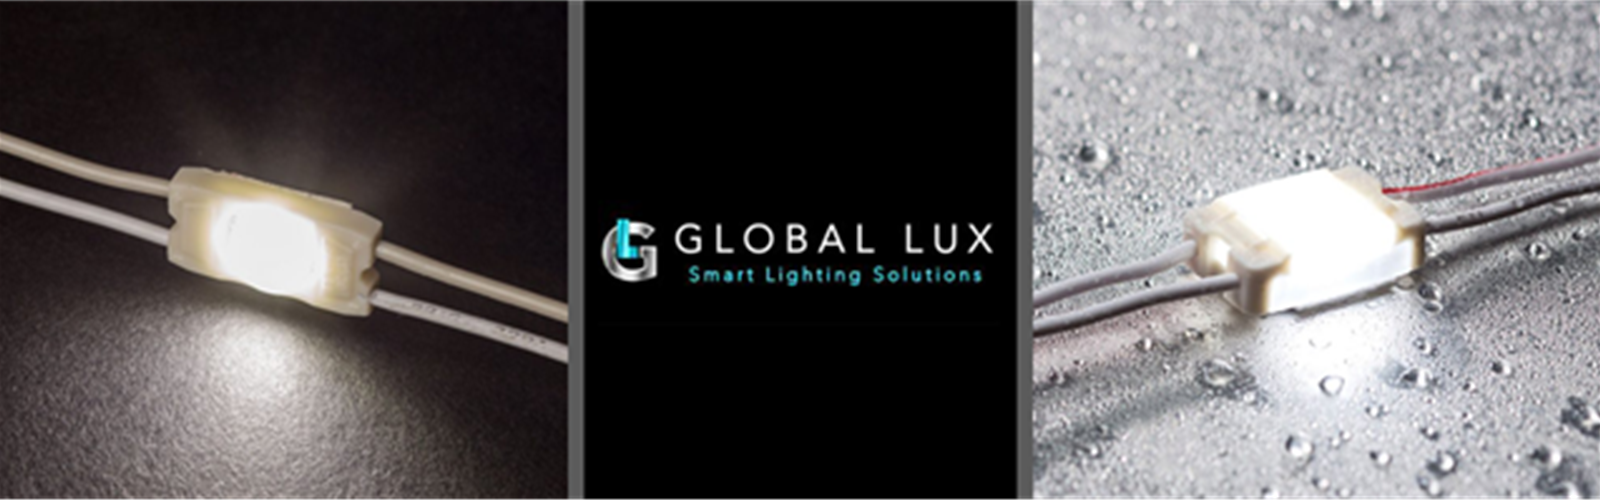 Global Lux